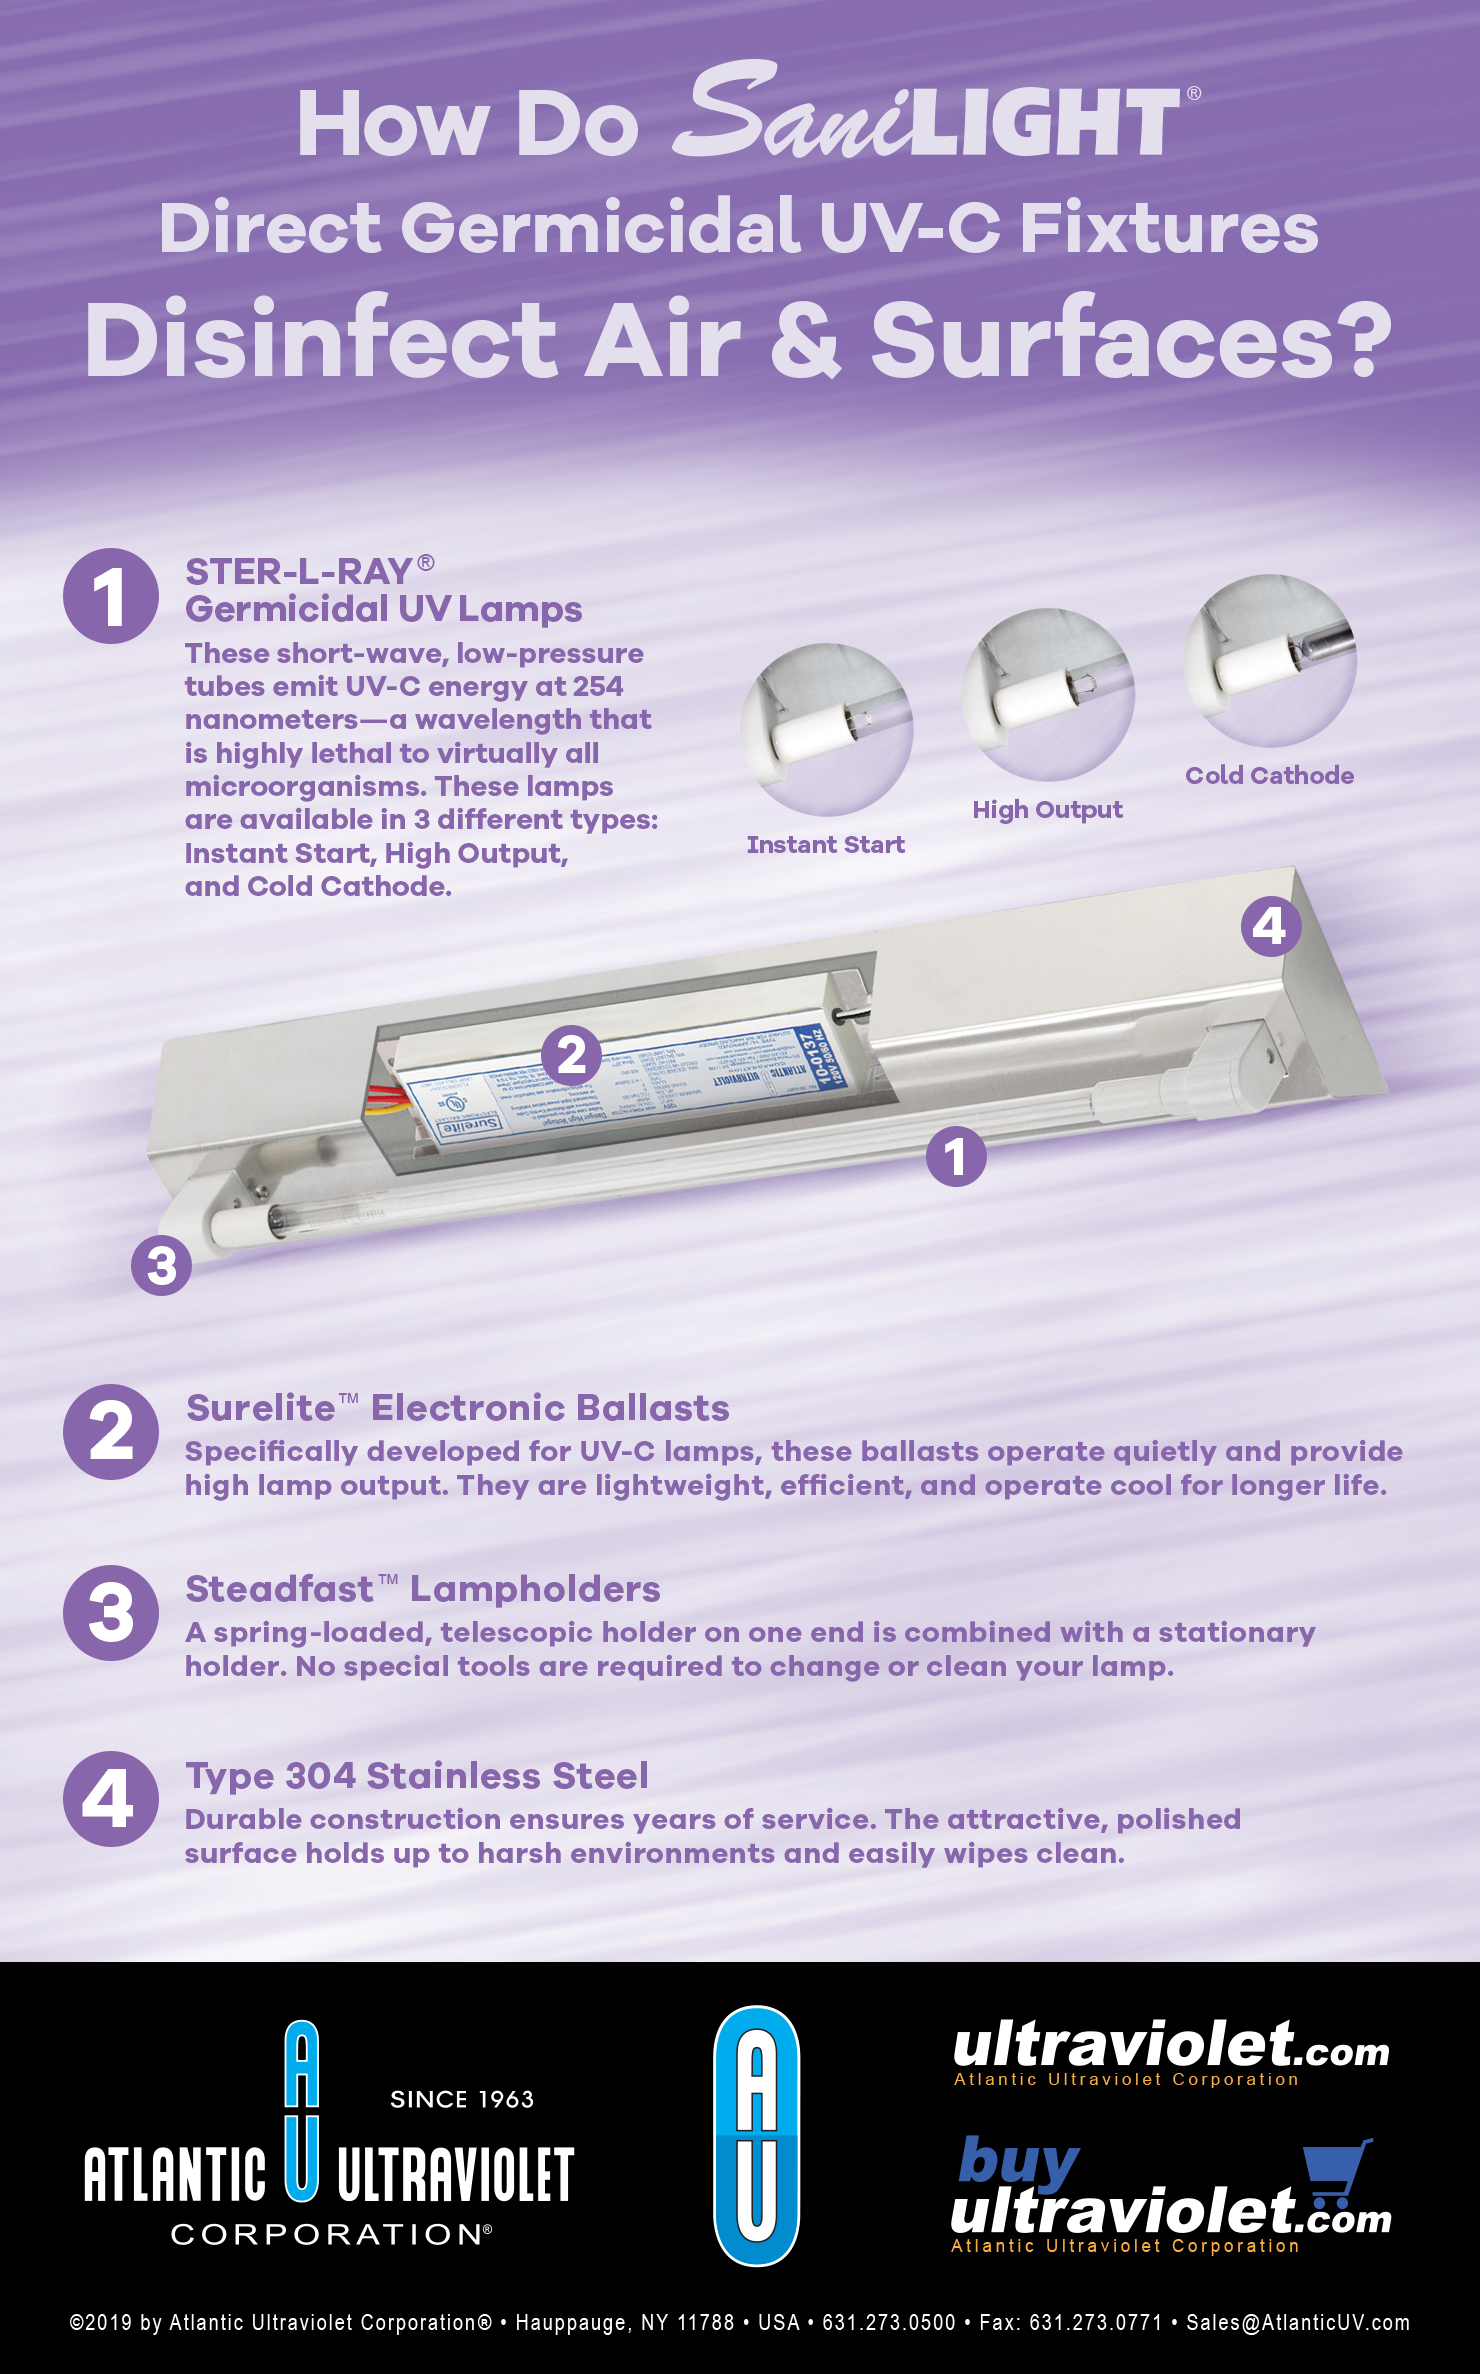 How Do SaniLIGHT® Direct Germicidal UV-C Fixtures Disinfect Air & Surfaces? - Infographic